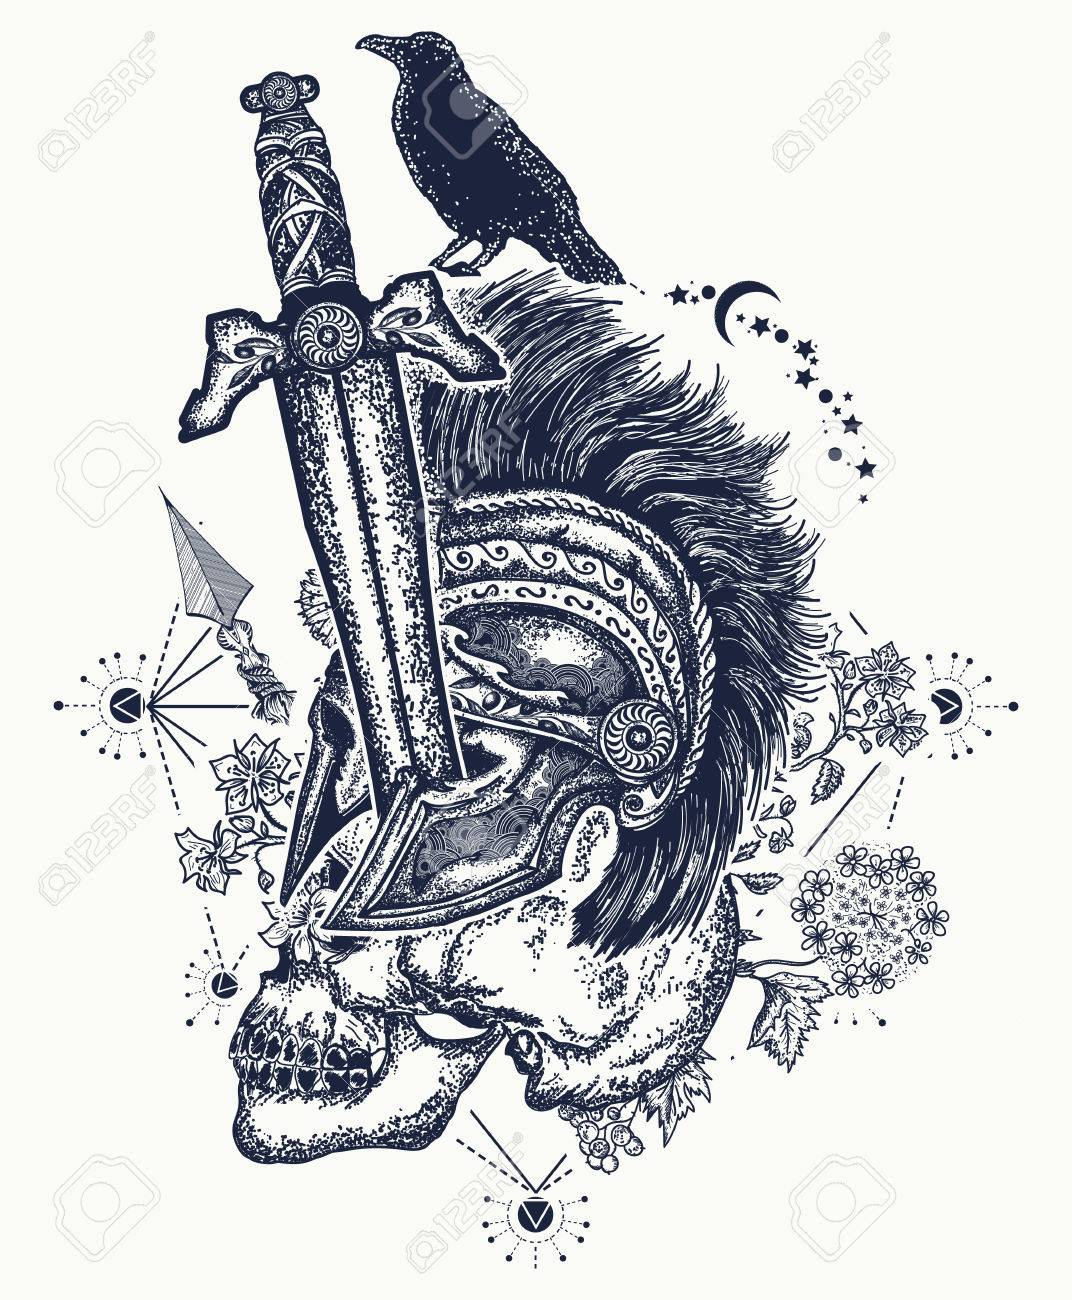 Soldiers skull tattoo. Ancient soldier is killed with sword, medieval sword has pierced spartan's warrior. Gothic tattoo, symbol of life and death, good and evil, light and gloom t-shirt gothic design - 82233361